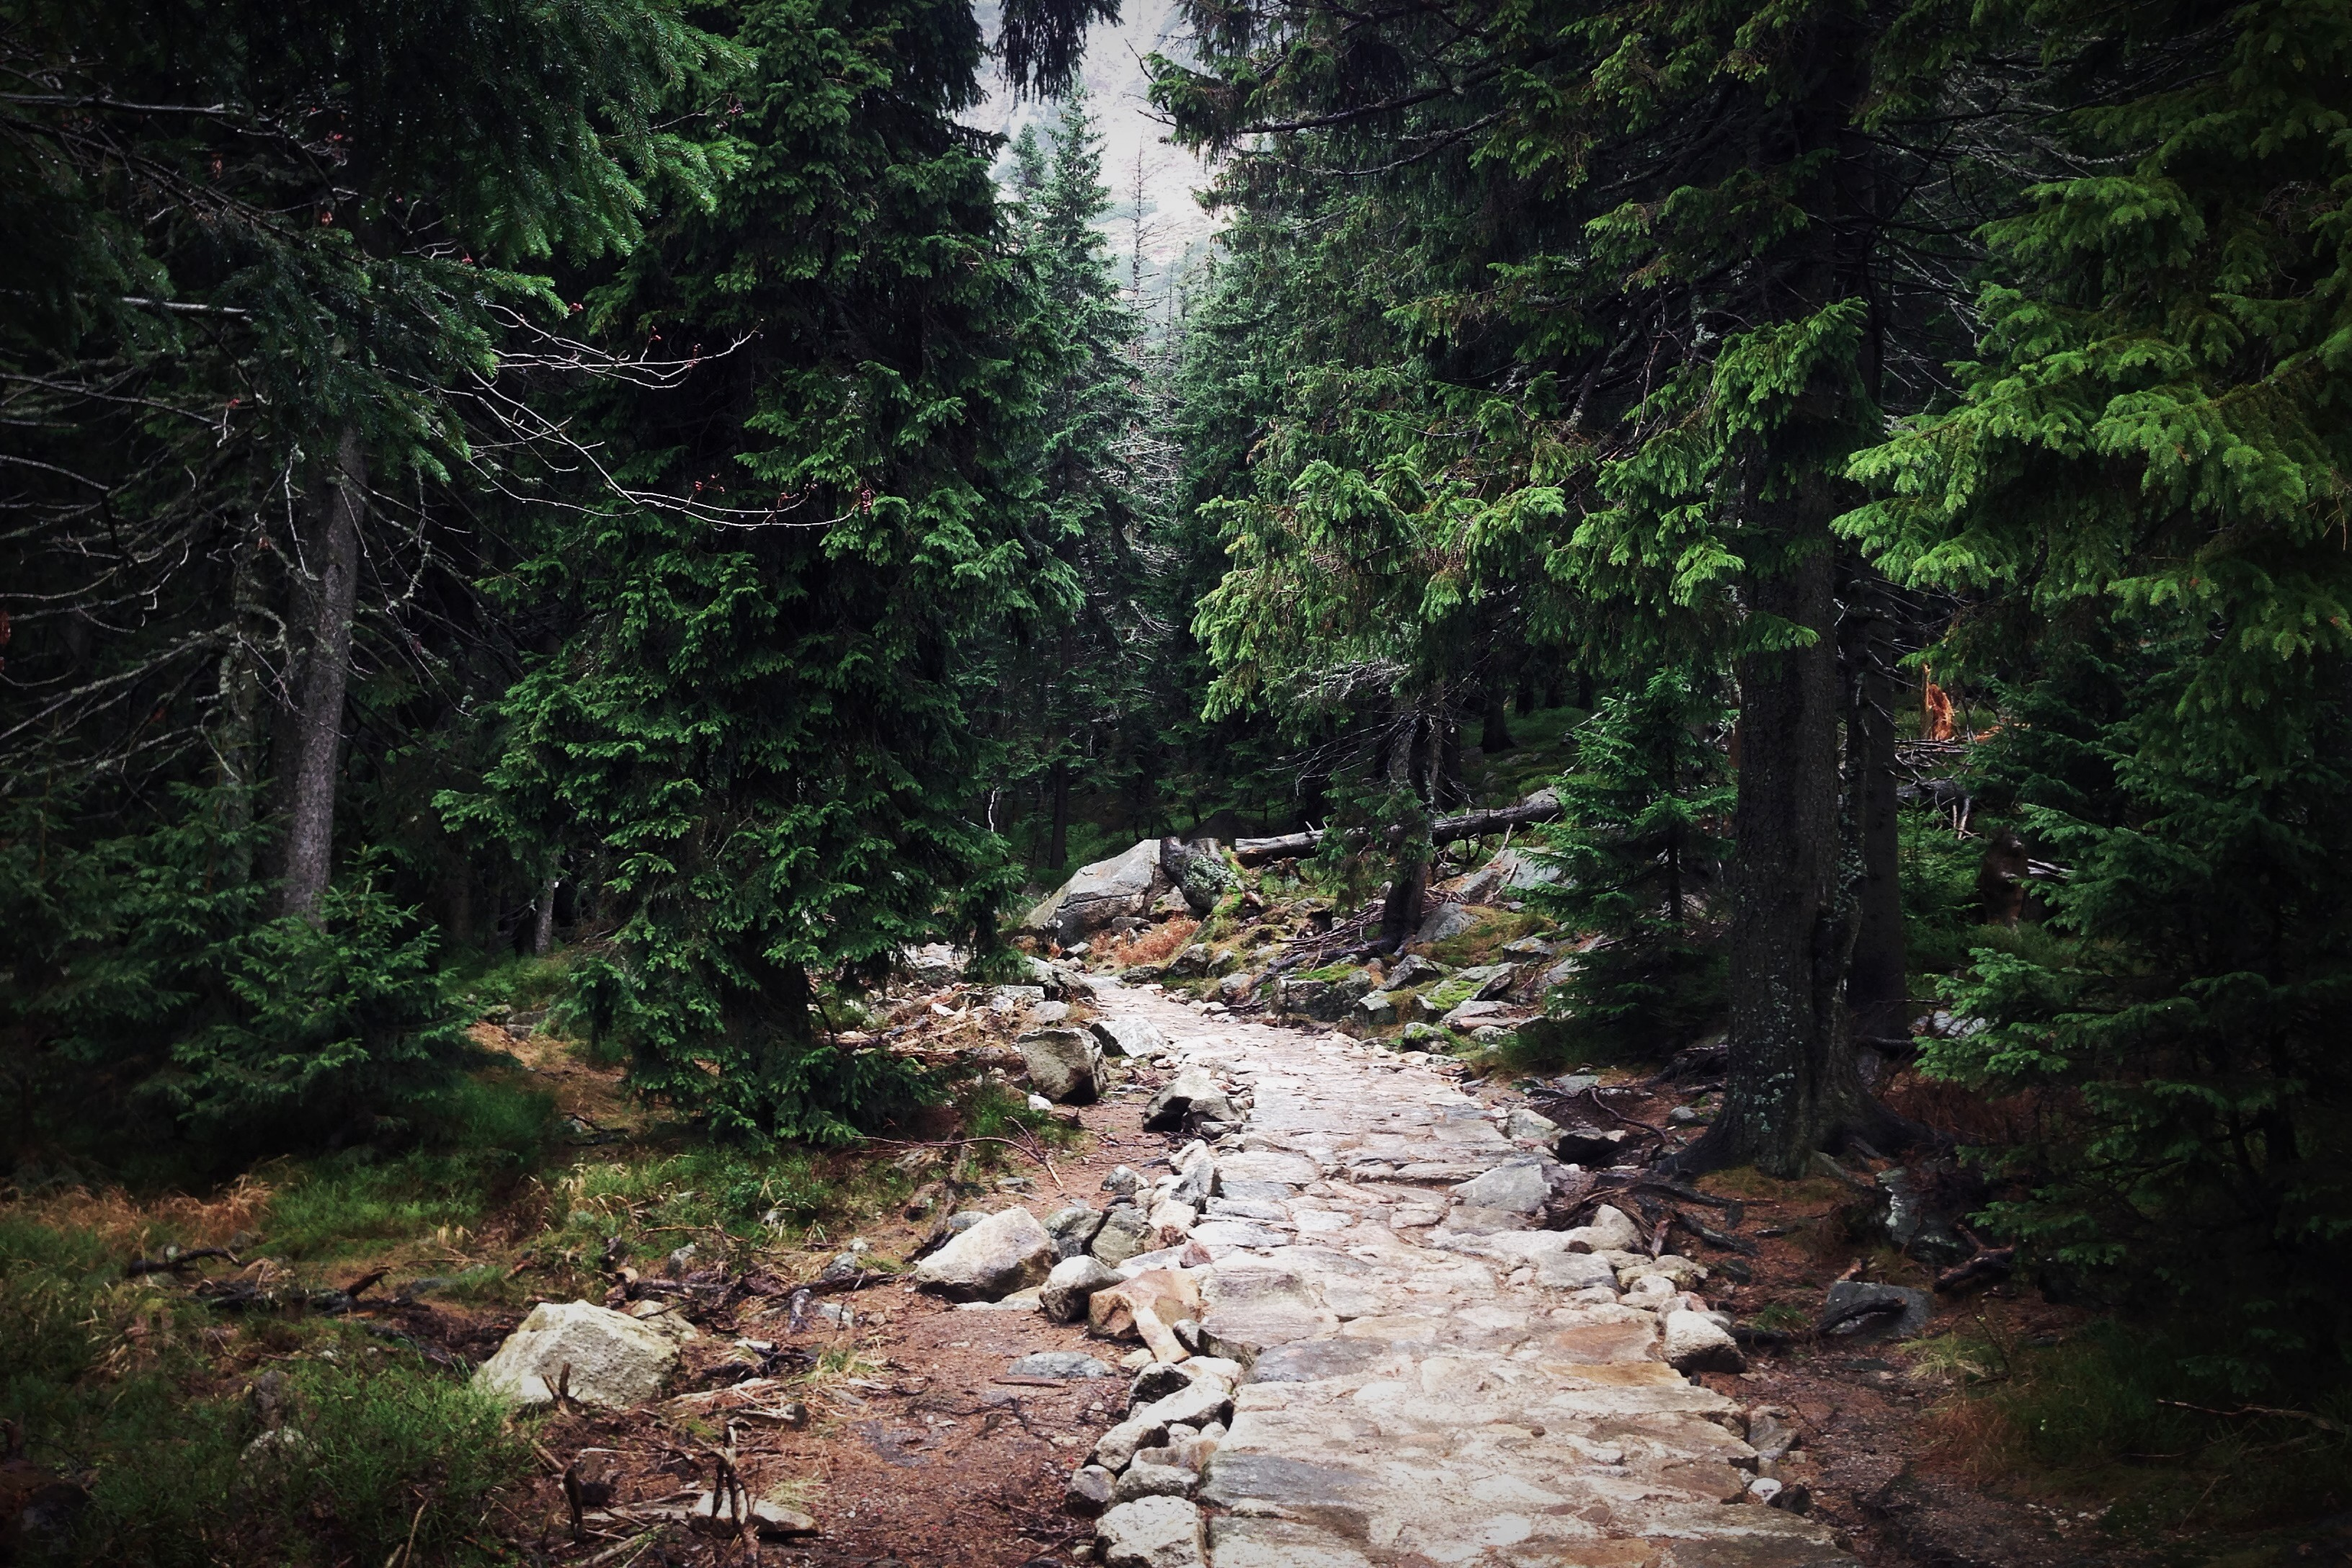 Stone Path in Park, Evergreen, Forest, Nature, Outdoor, HQ Photo